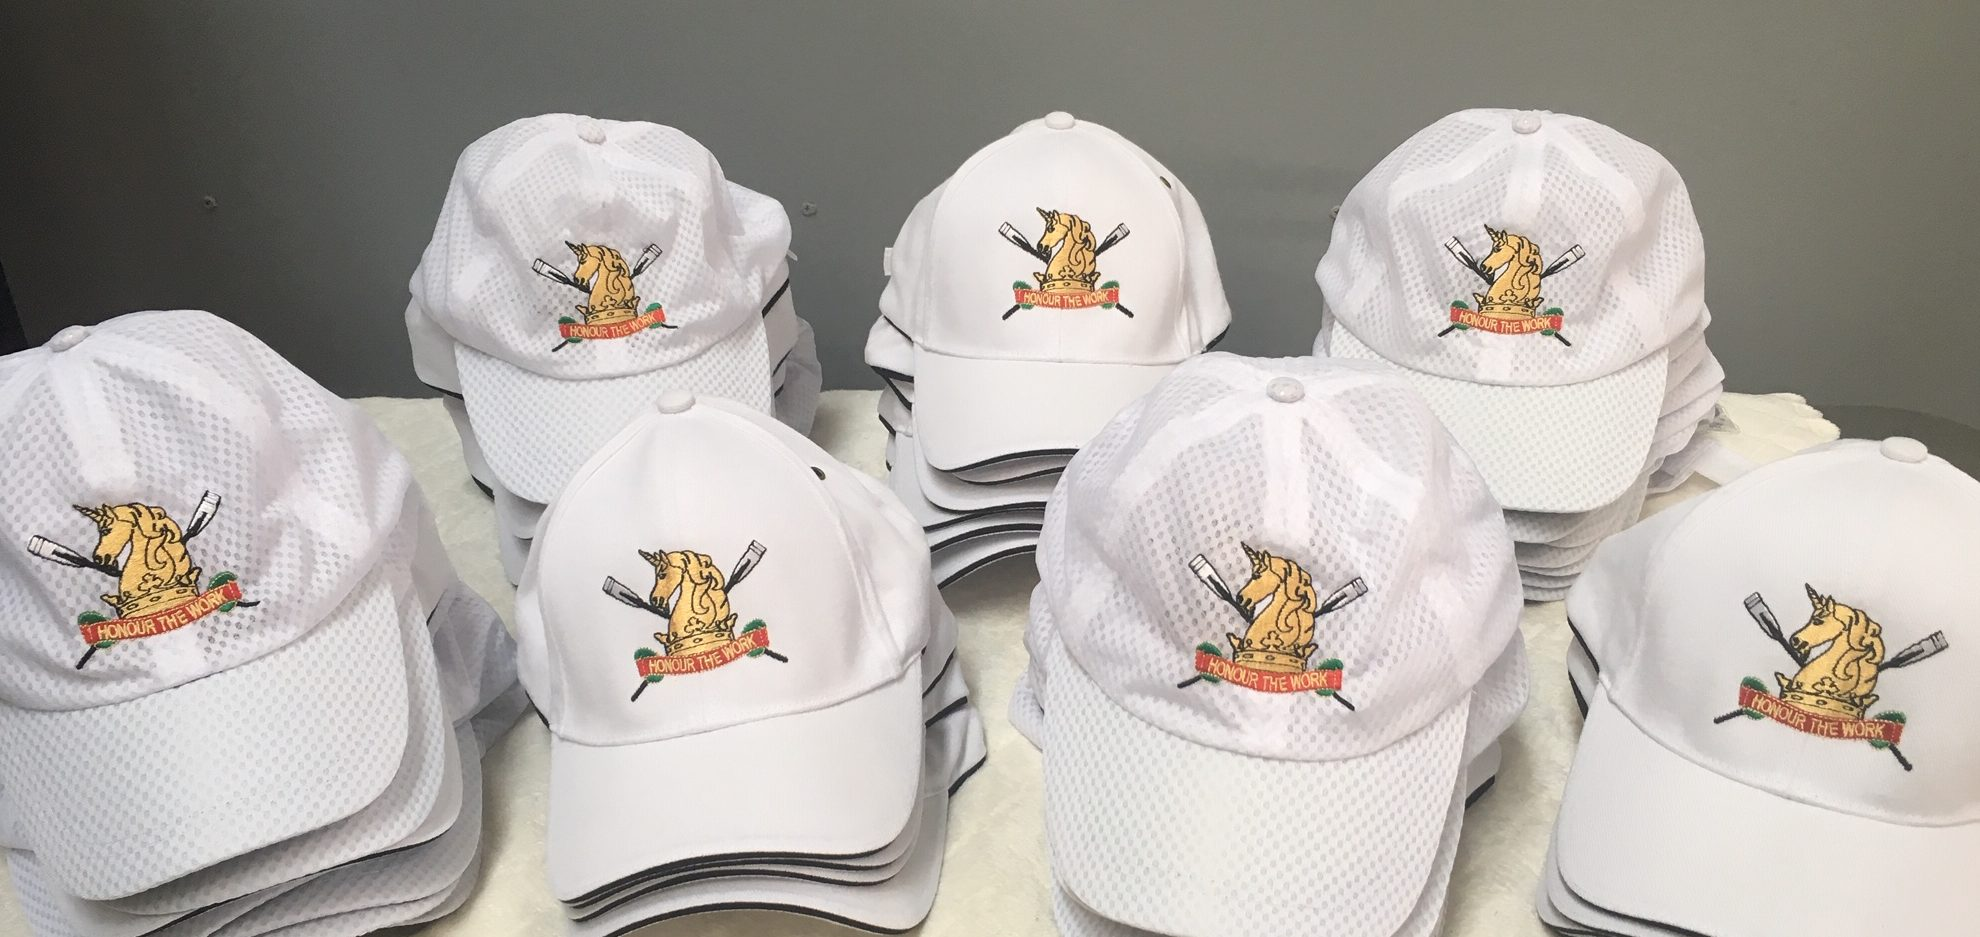 melbourne-high-school-MHS-rowing-club-caps-embroidery